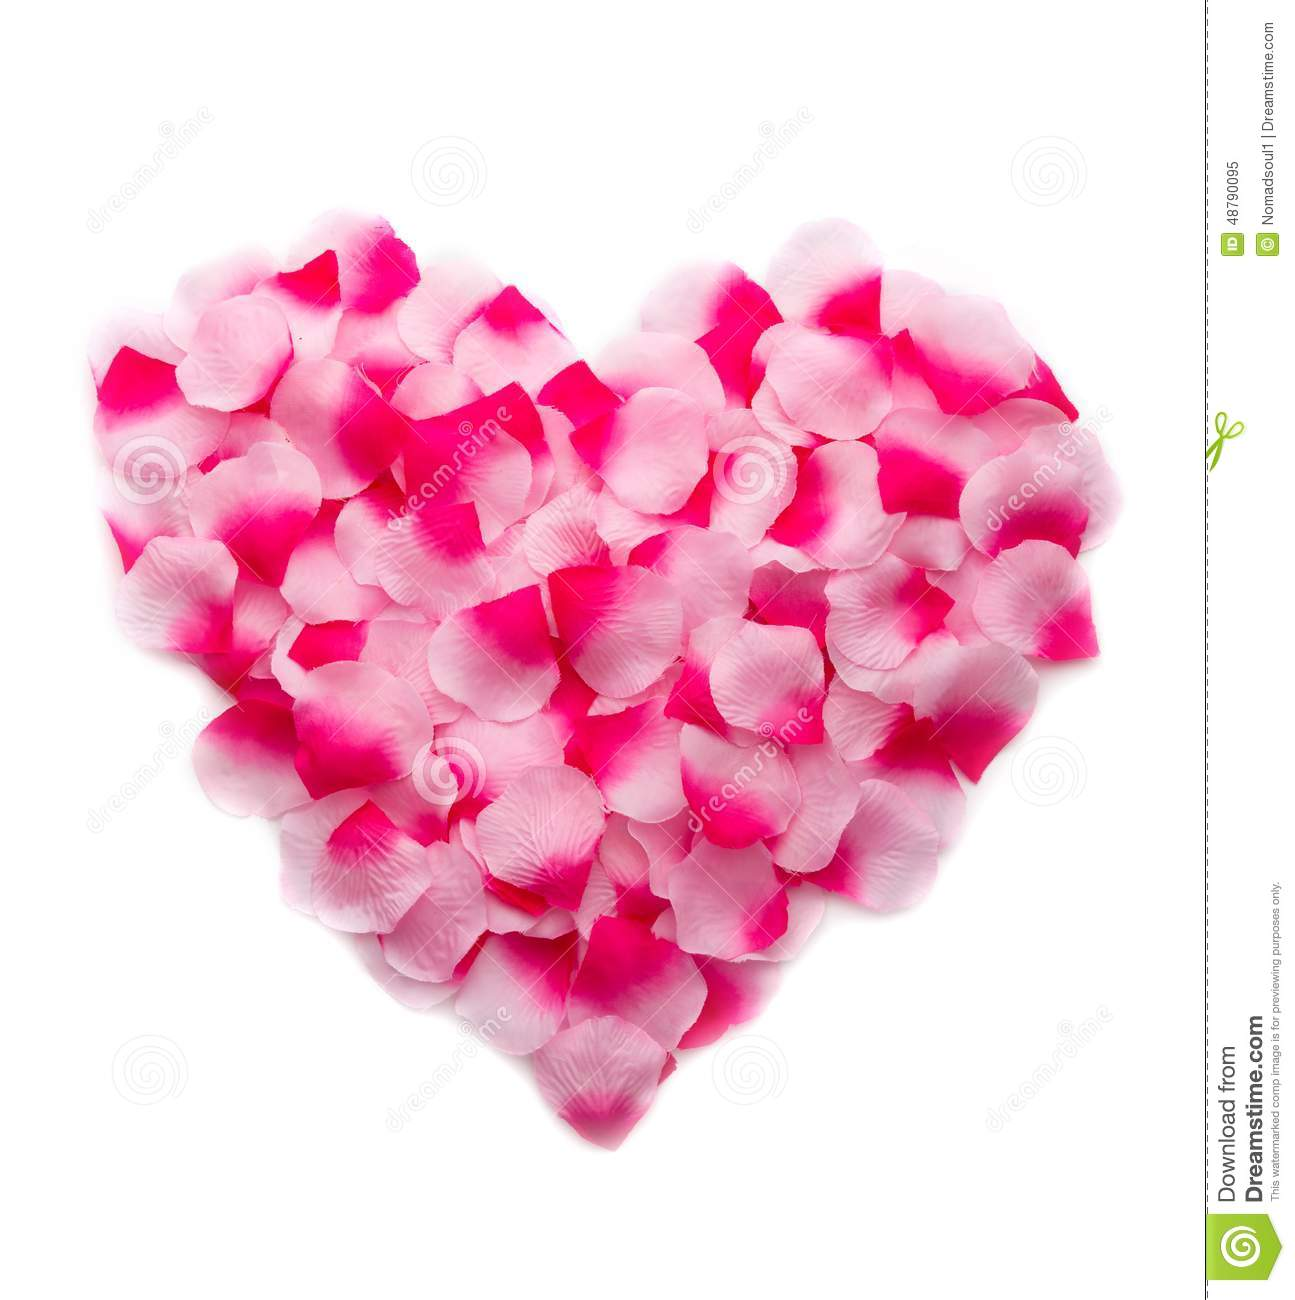 Compass rose stock images royalty free images amp vectors - Rose Petals For Valentines Day Hot Girls Wallpaper